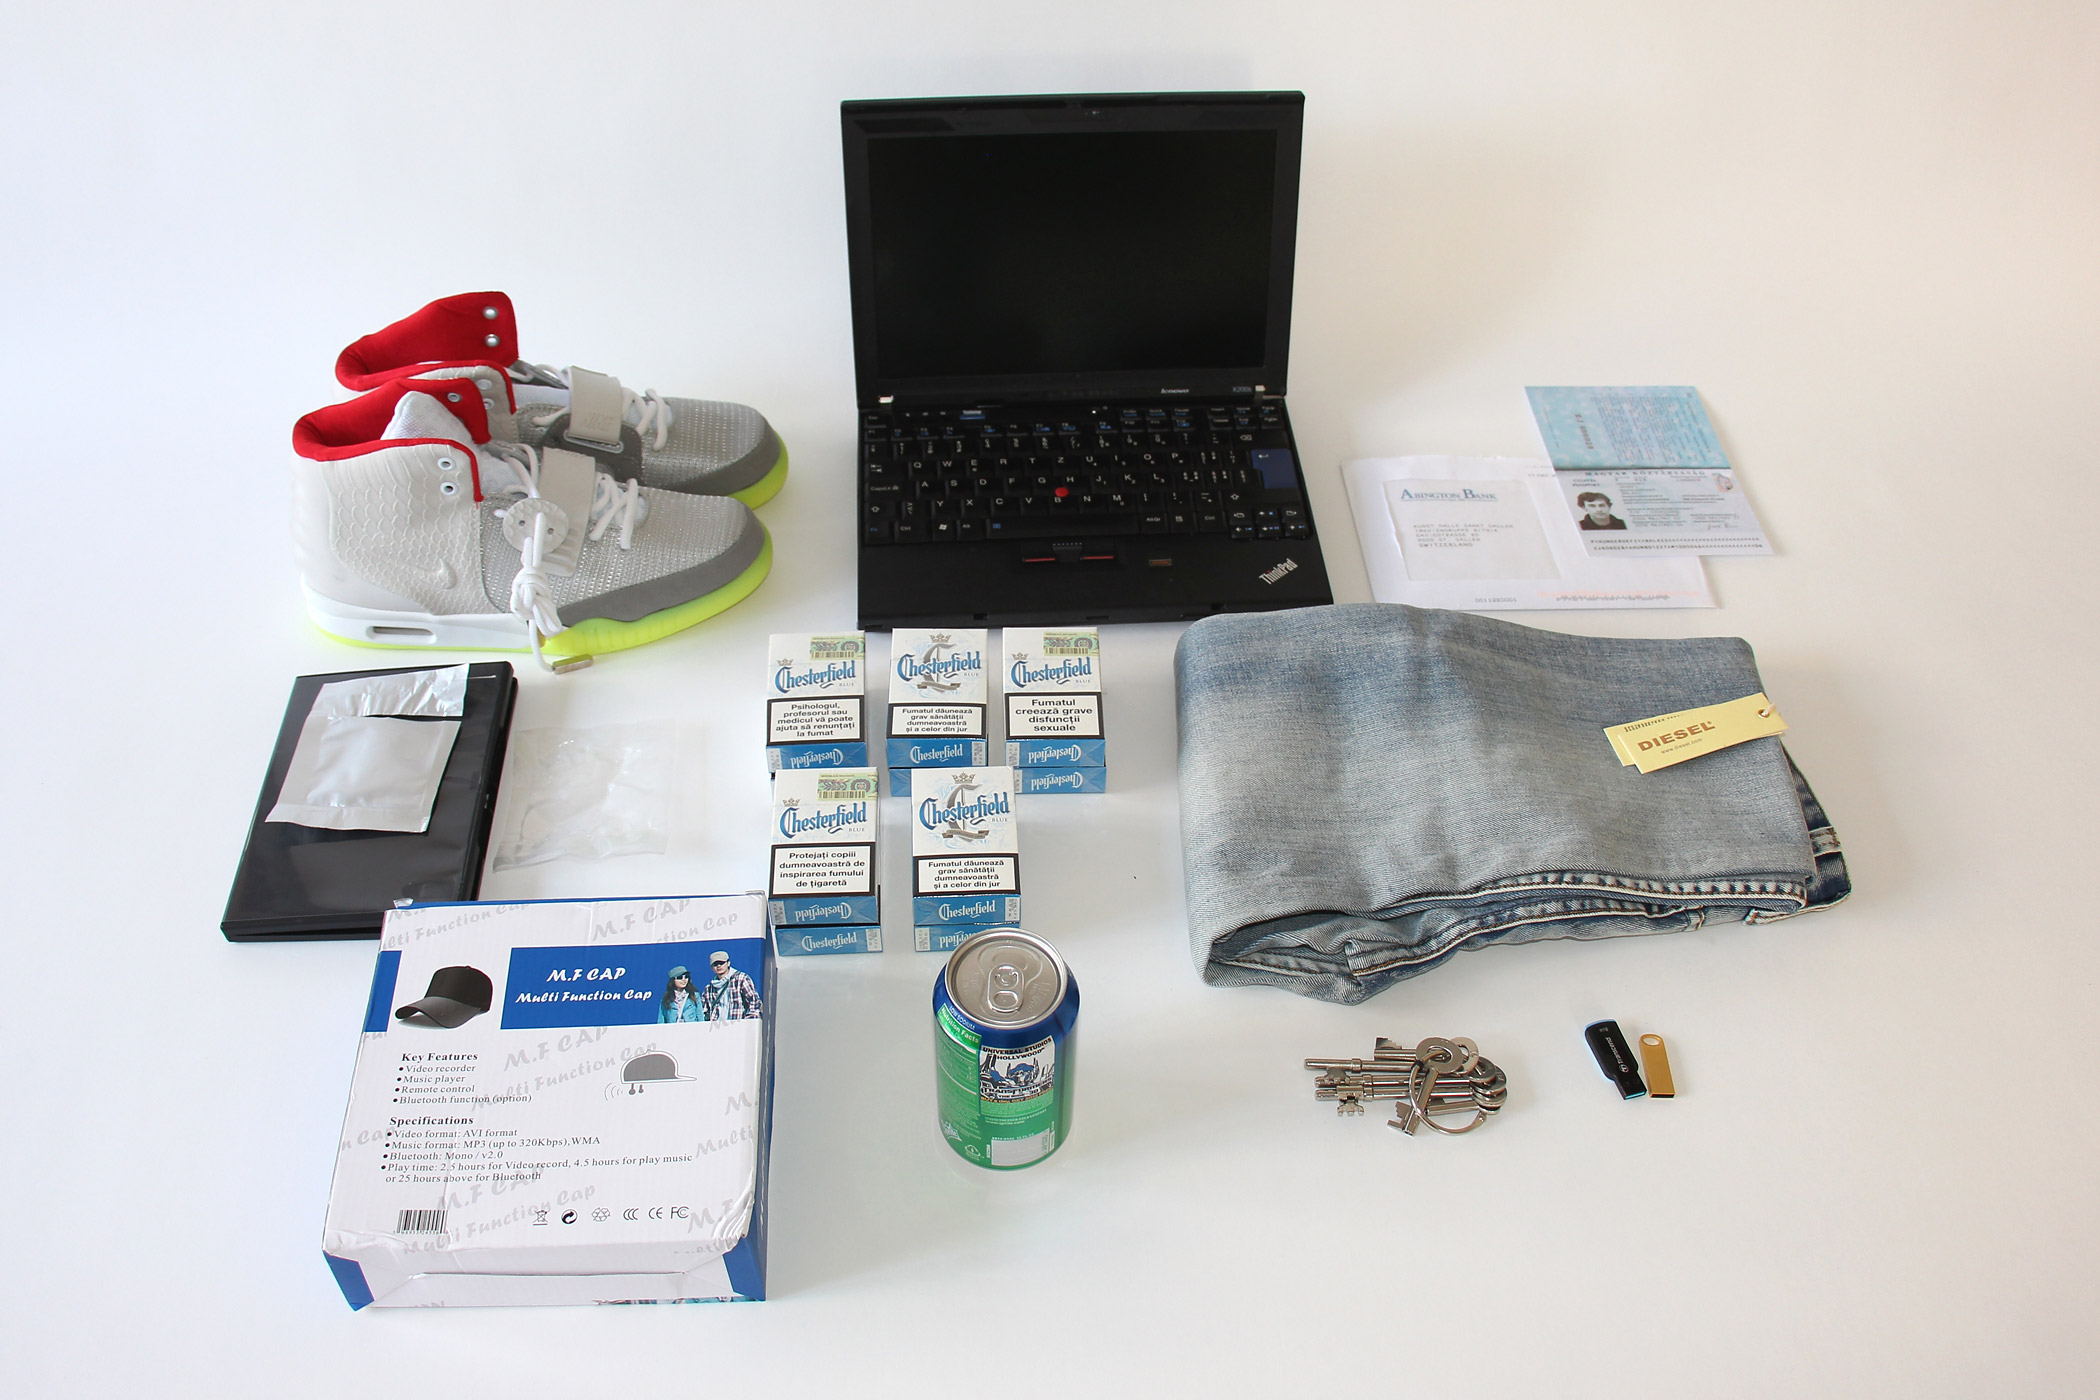 Items purchased on the darknet by the Random Darknet Shopper